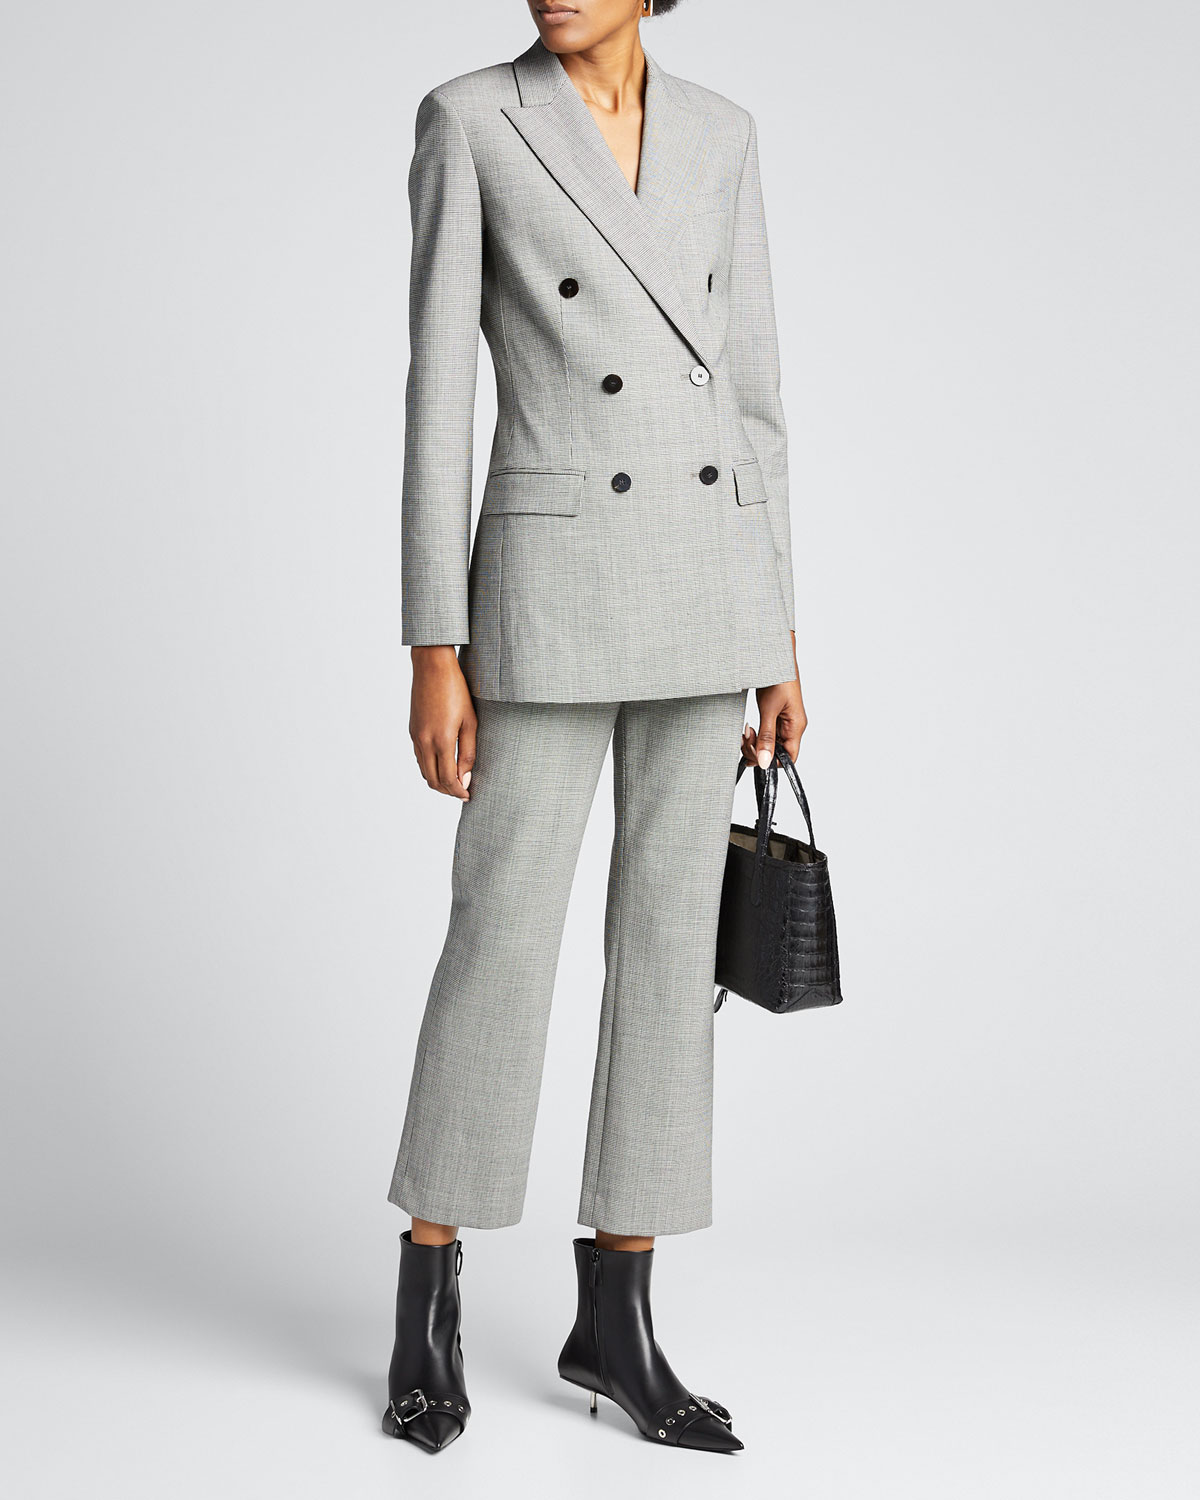 Theory Jackets DOUBLE-BREASTED TAILORED BLAZER